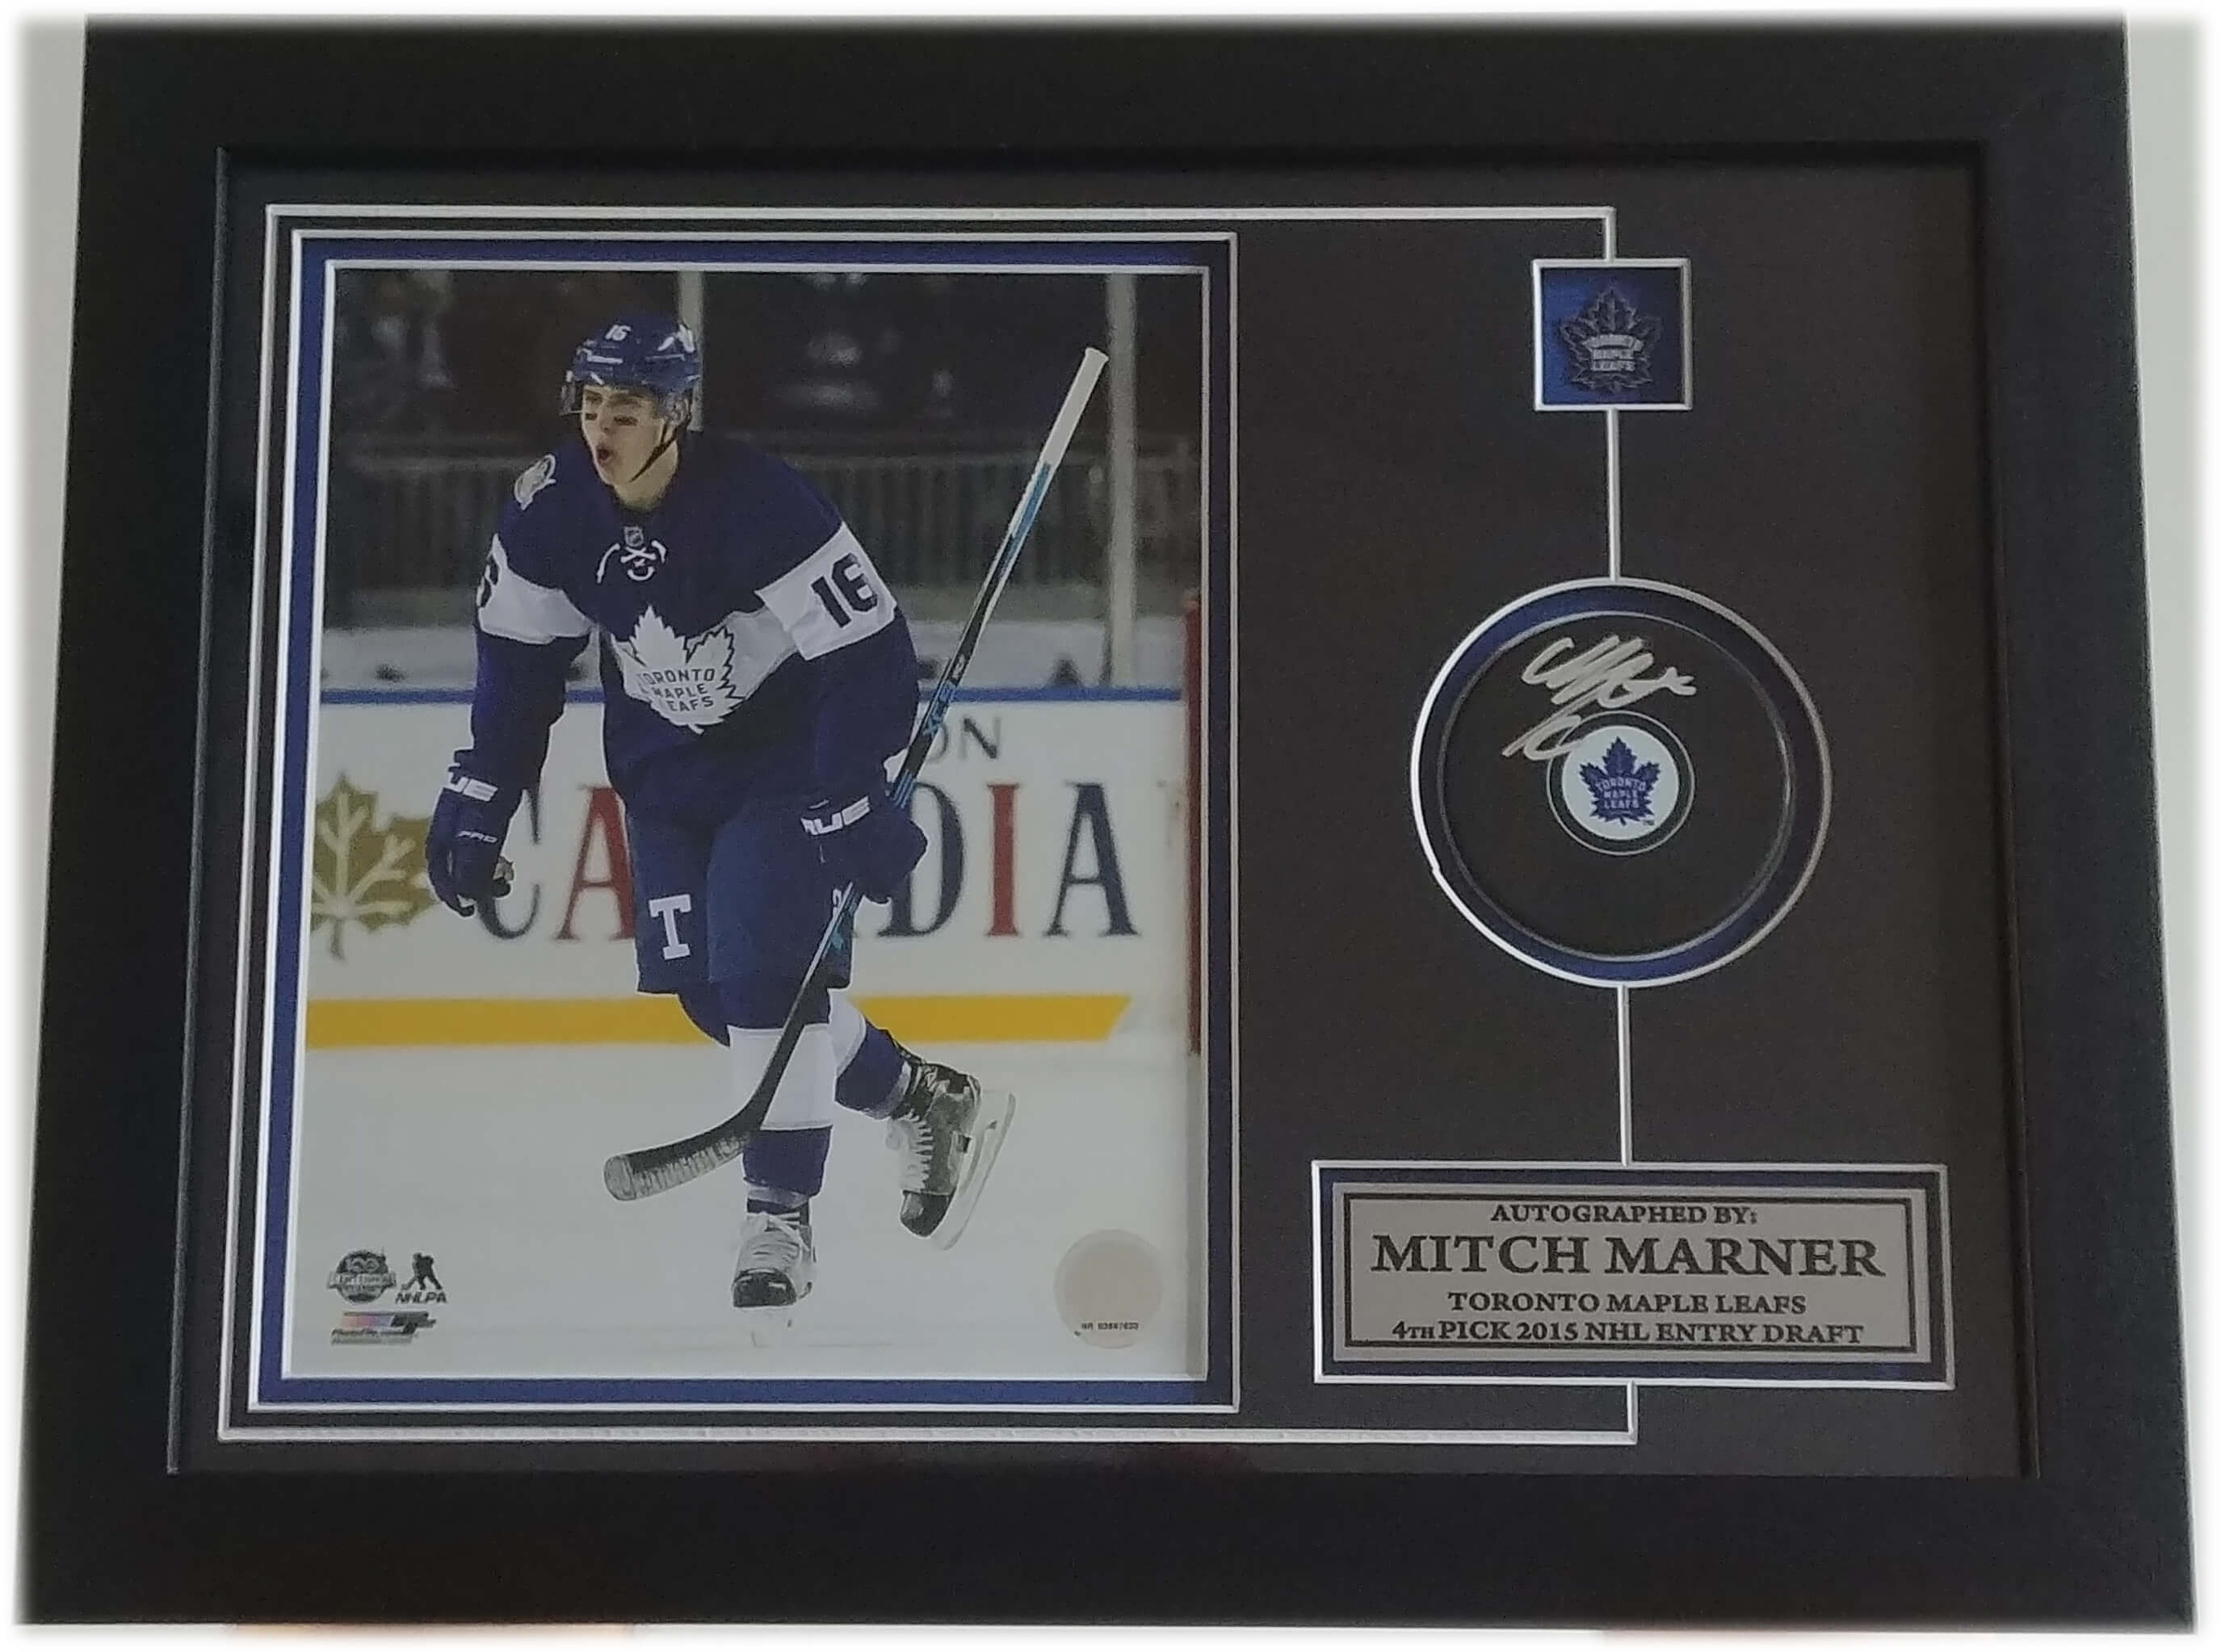 2efbc243d87 Mitch Marner Toronto Maple Leafs Autographed Puck With 8 x 10 Pin & Plate  Frame (Centennial)